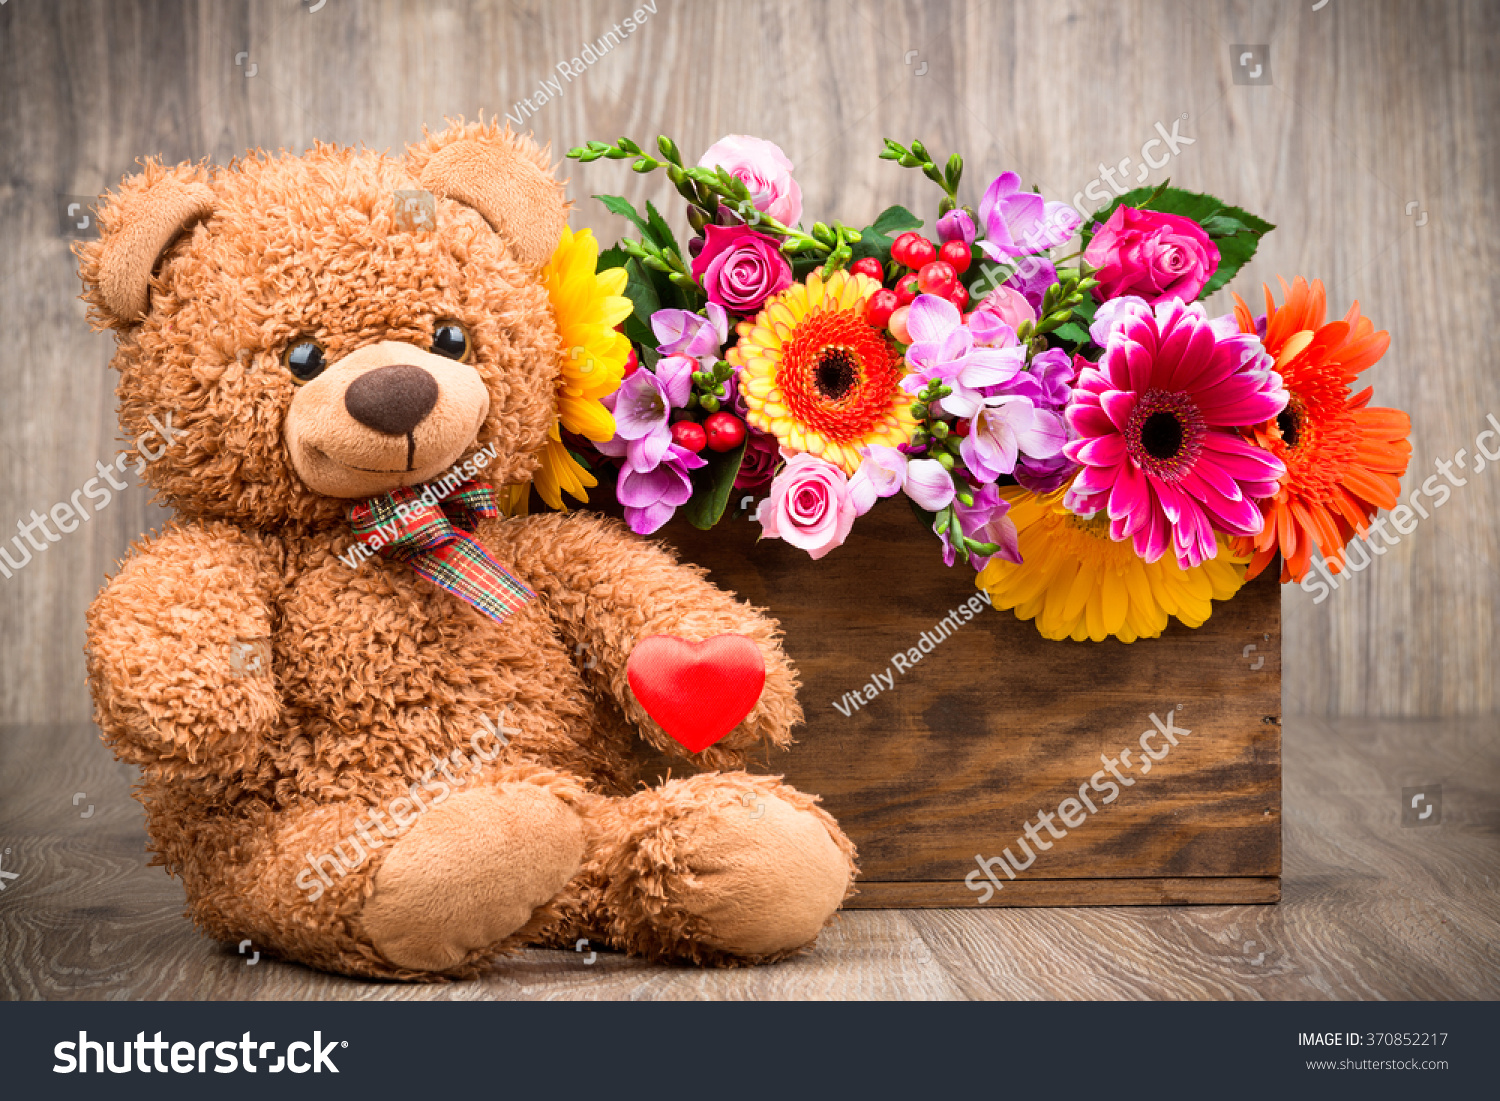 Beautiful flowers box teddy bear on stock photo edit now 370852217 beautiful flowers in the box and a teddy bear on wooden background izmirmasajfo